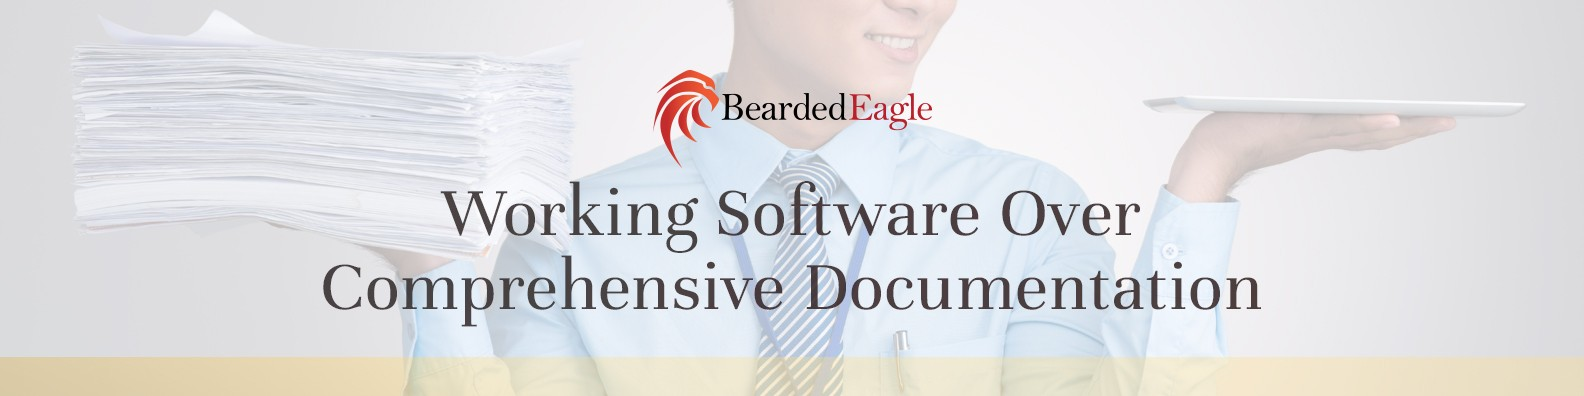 Working Software Over Comprehensive Documentation